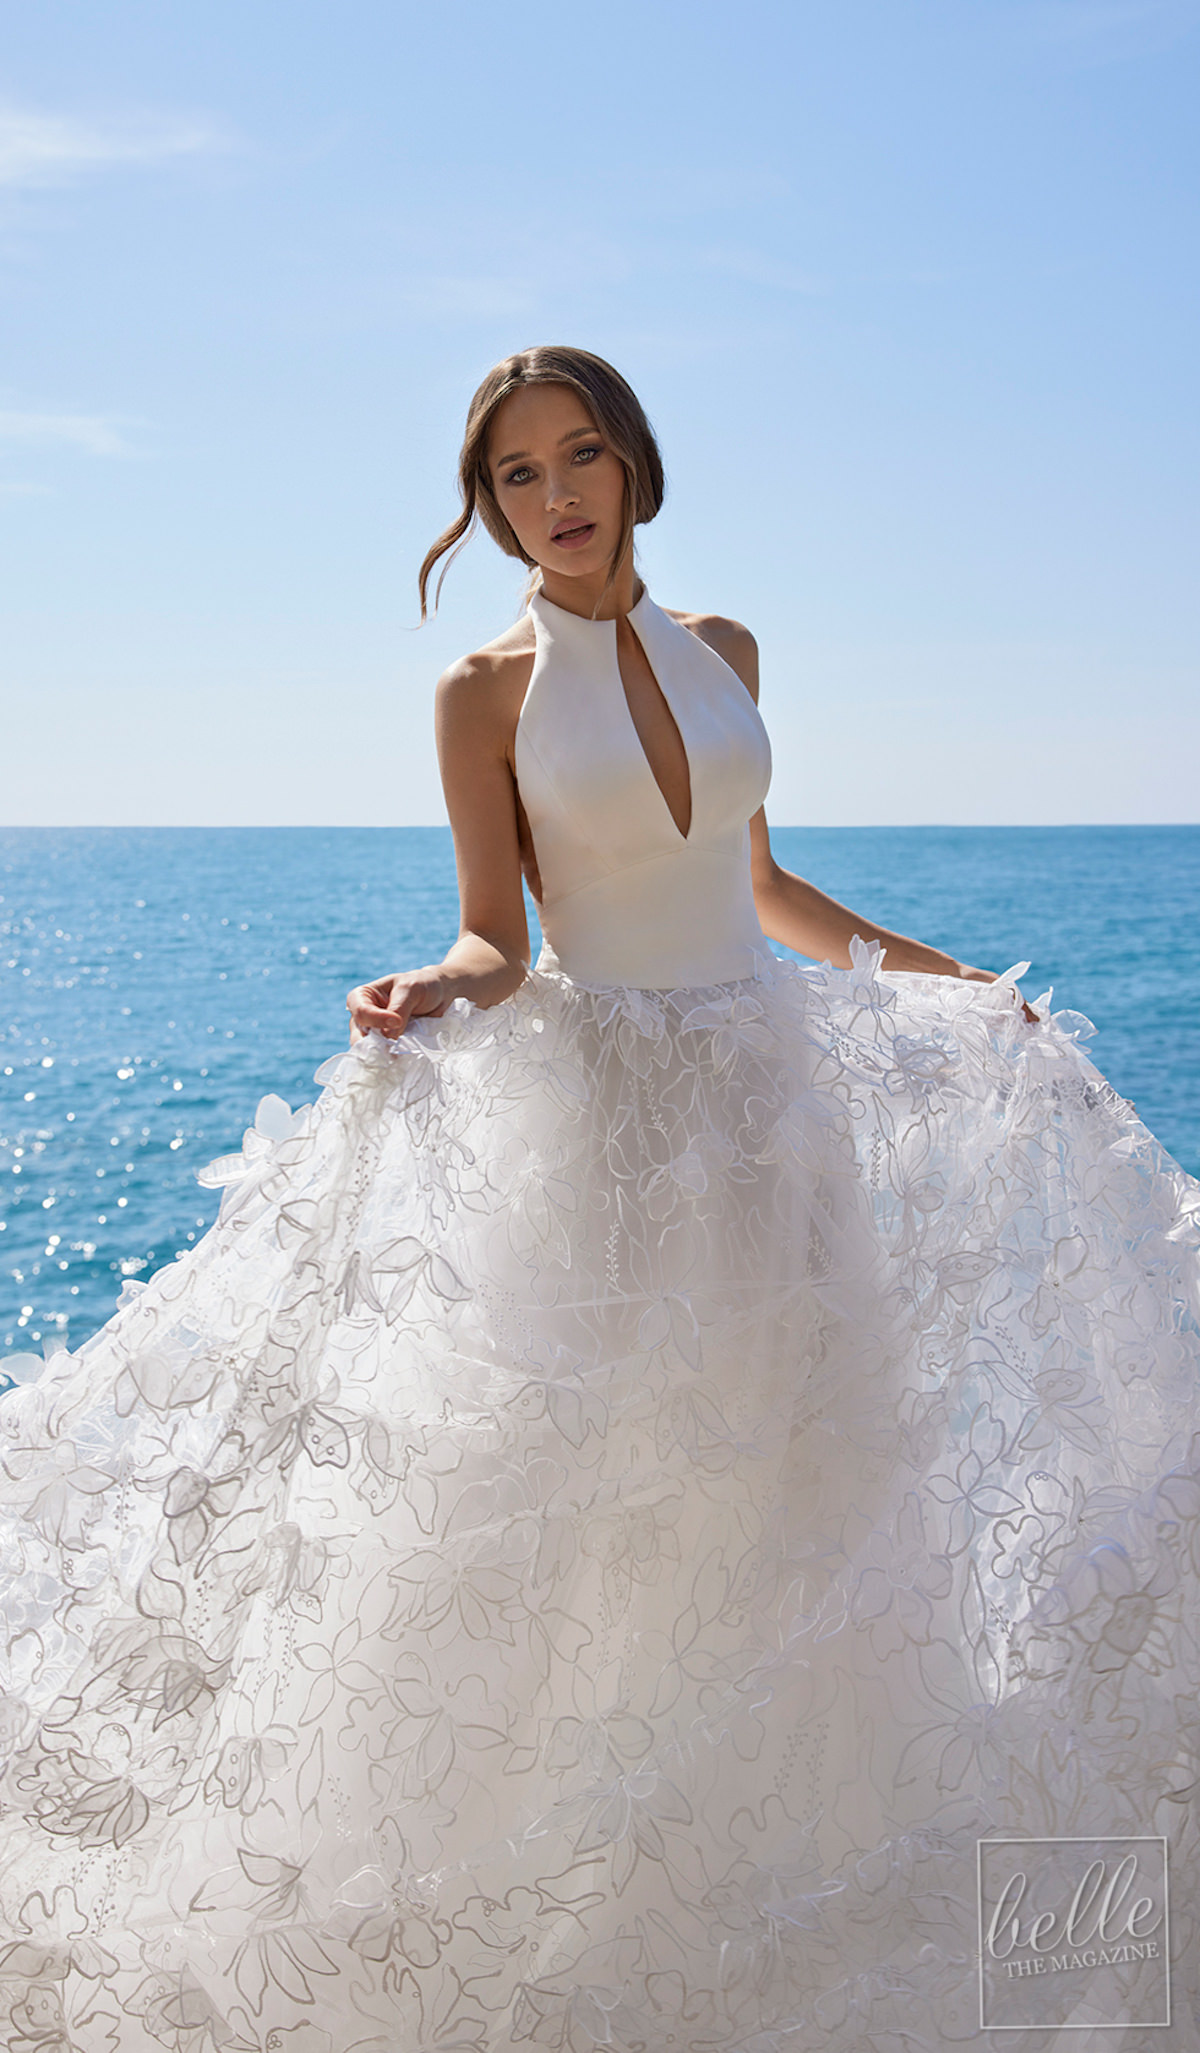 Wedding dress trends 2021 - Florals - Ines by Ines Di Santo SS22 Penelope